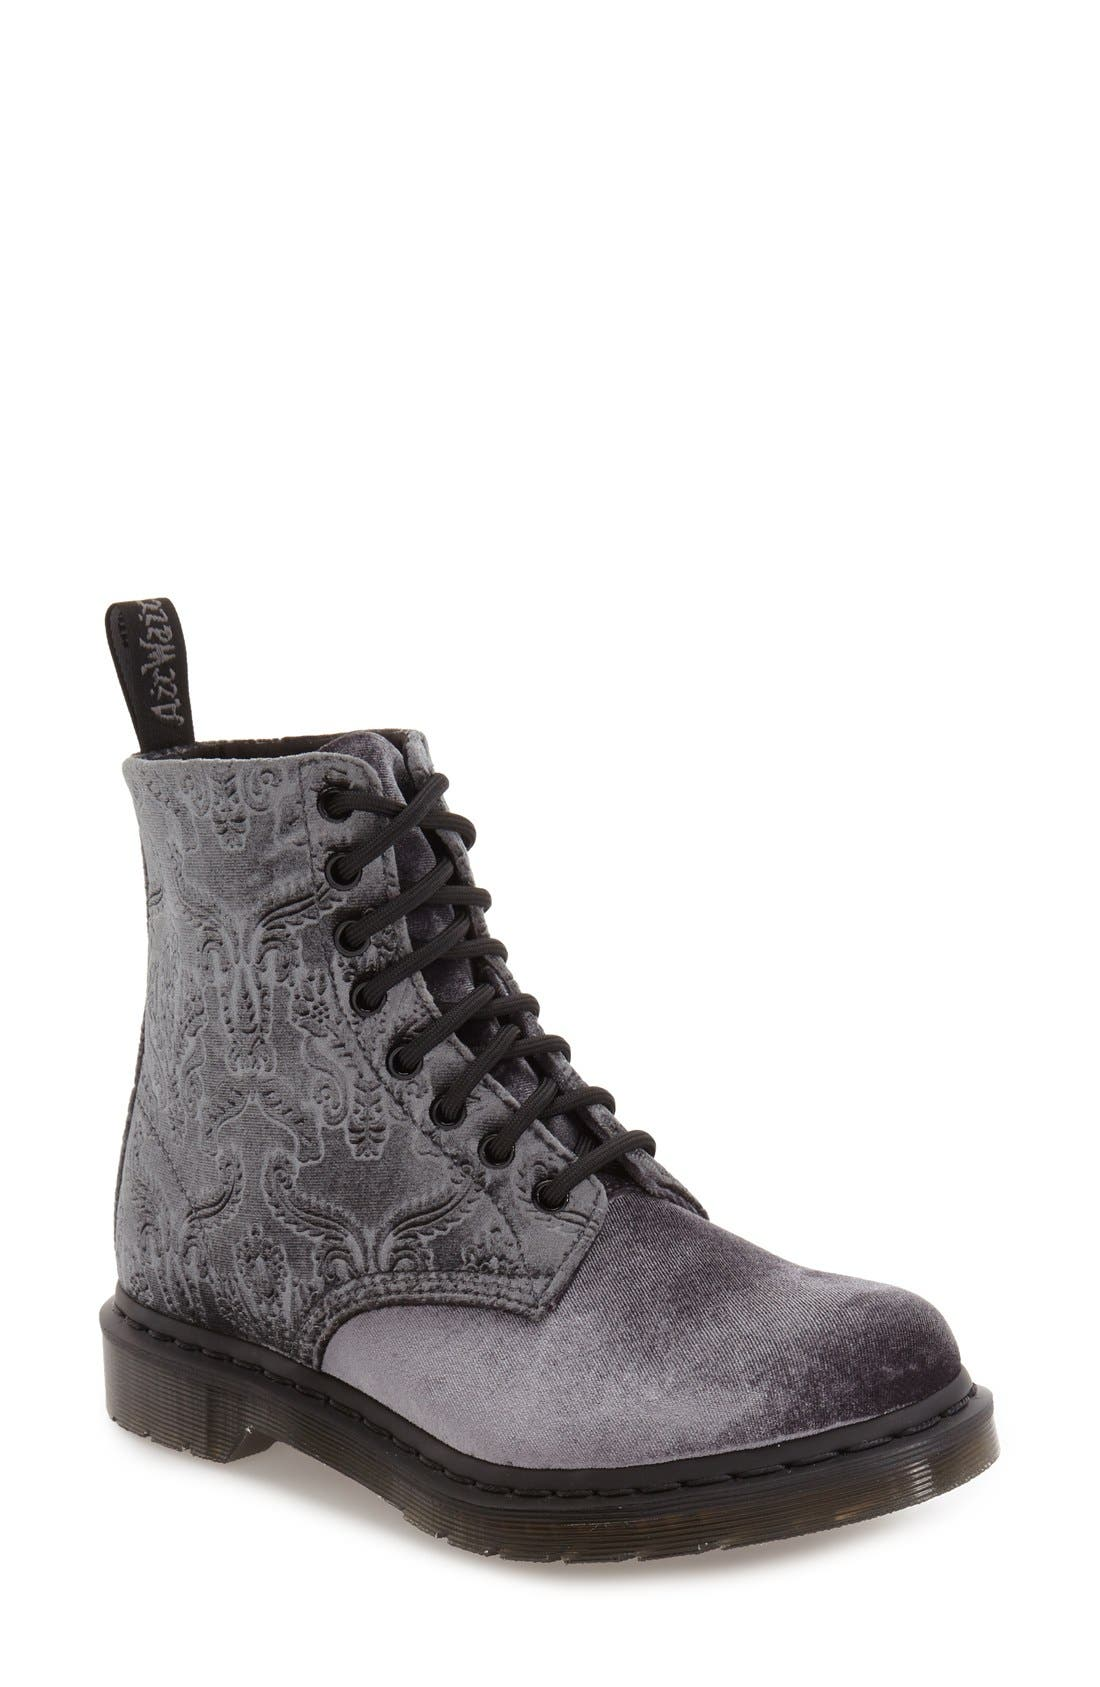 DR. MARTENS 'Pascal' Hiking Boot, Main, color, 020